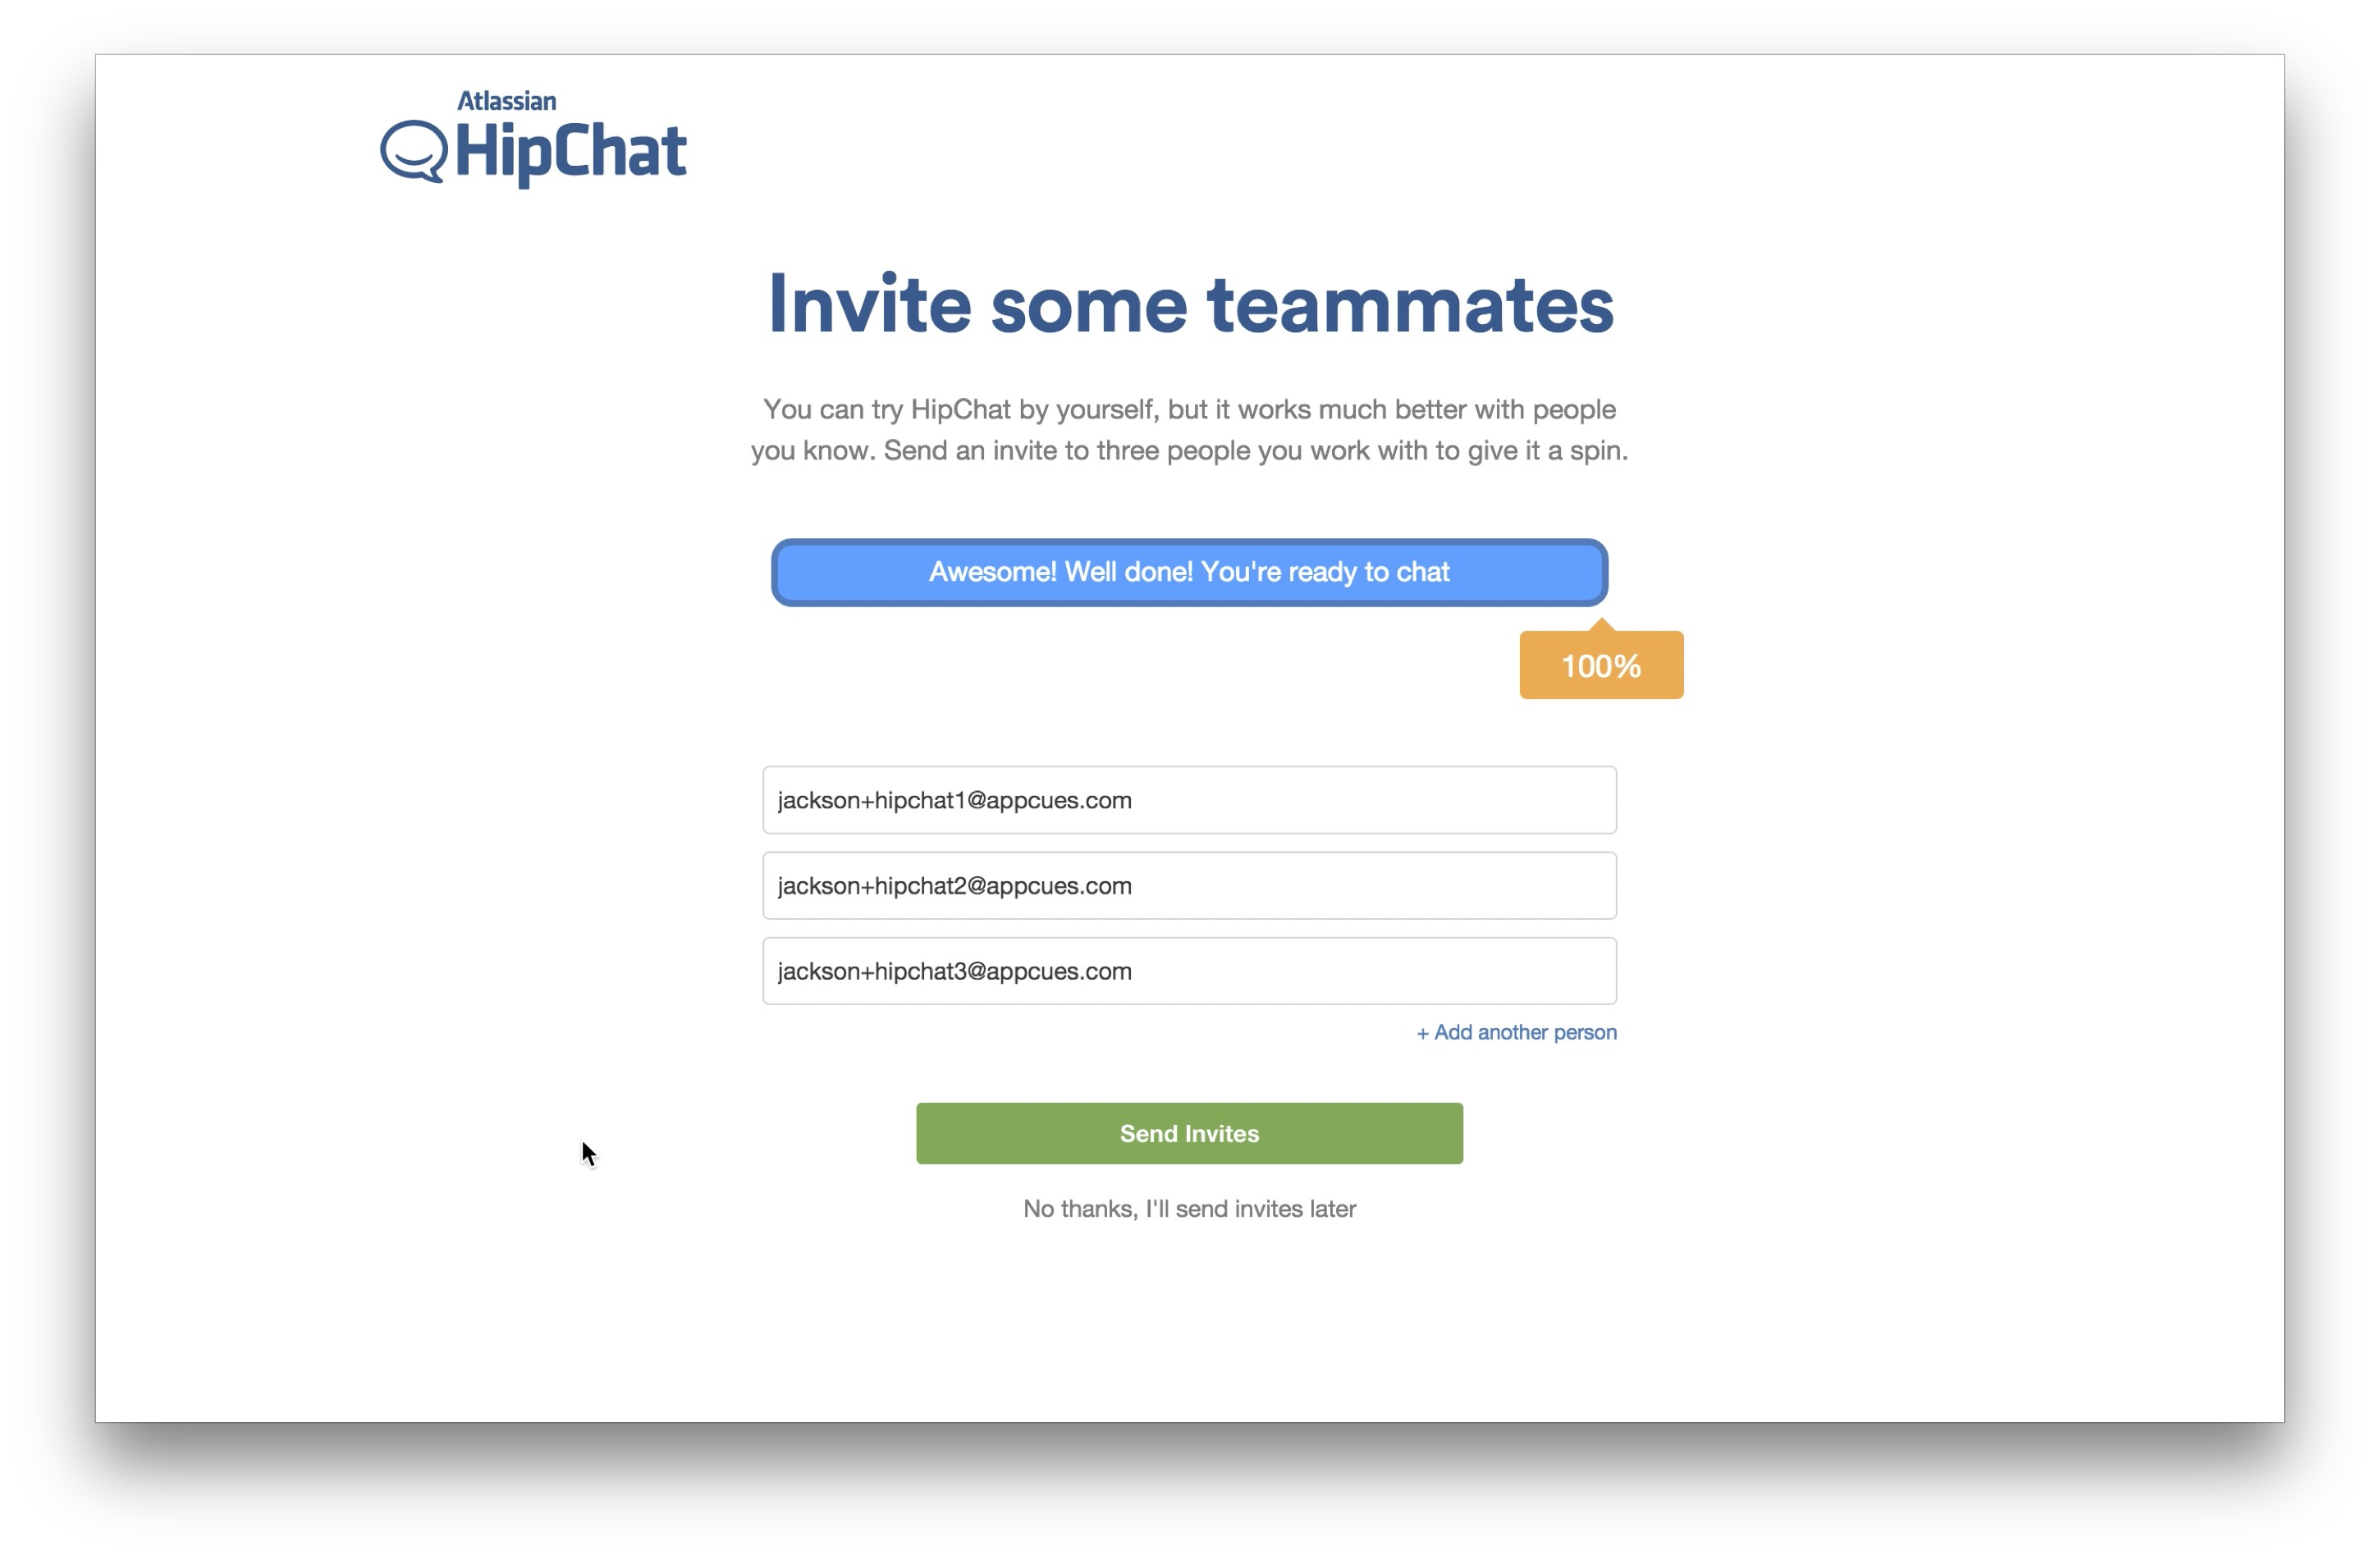 Hipchat invite tooltip 4